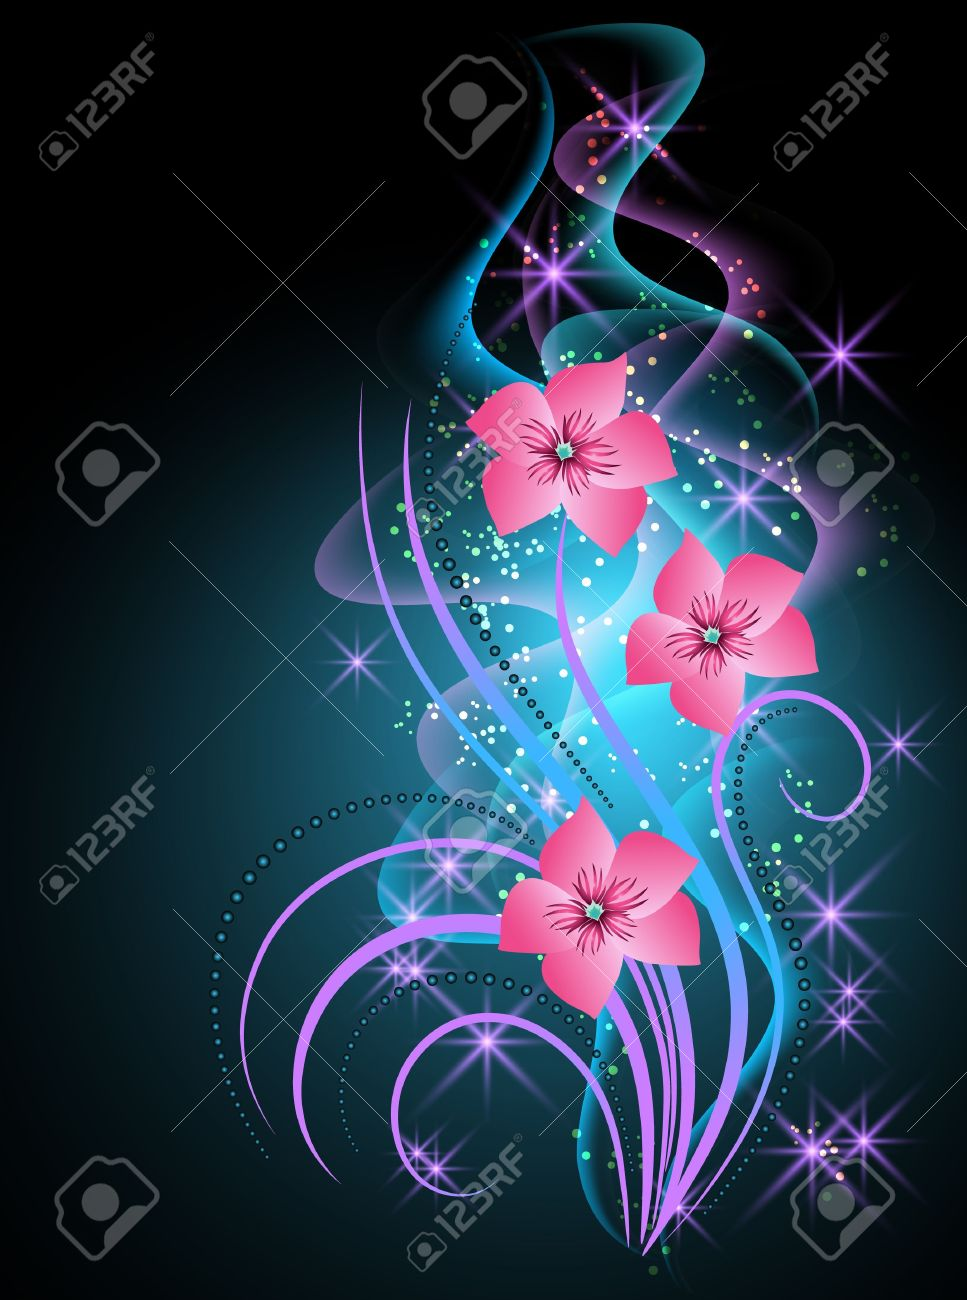 Glowing background with smoke and transparent flowers - 13662575